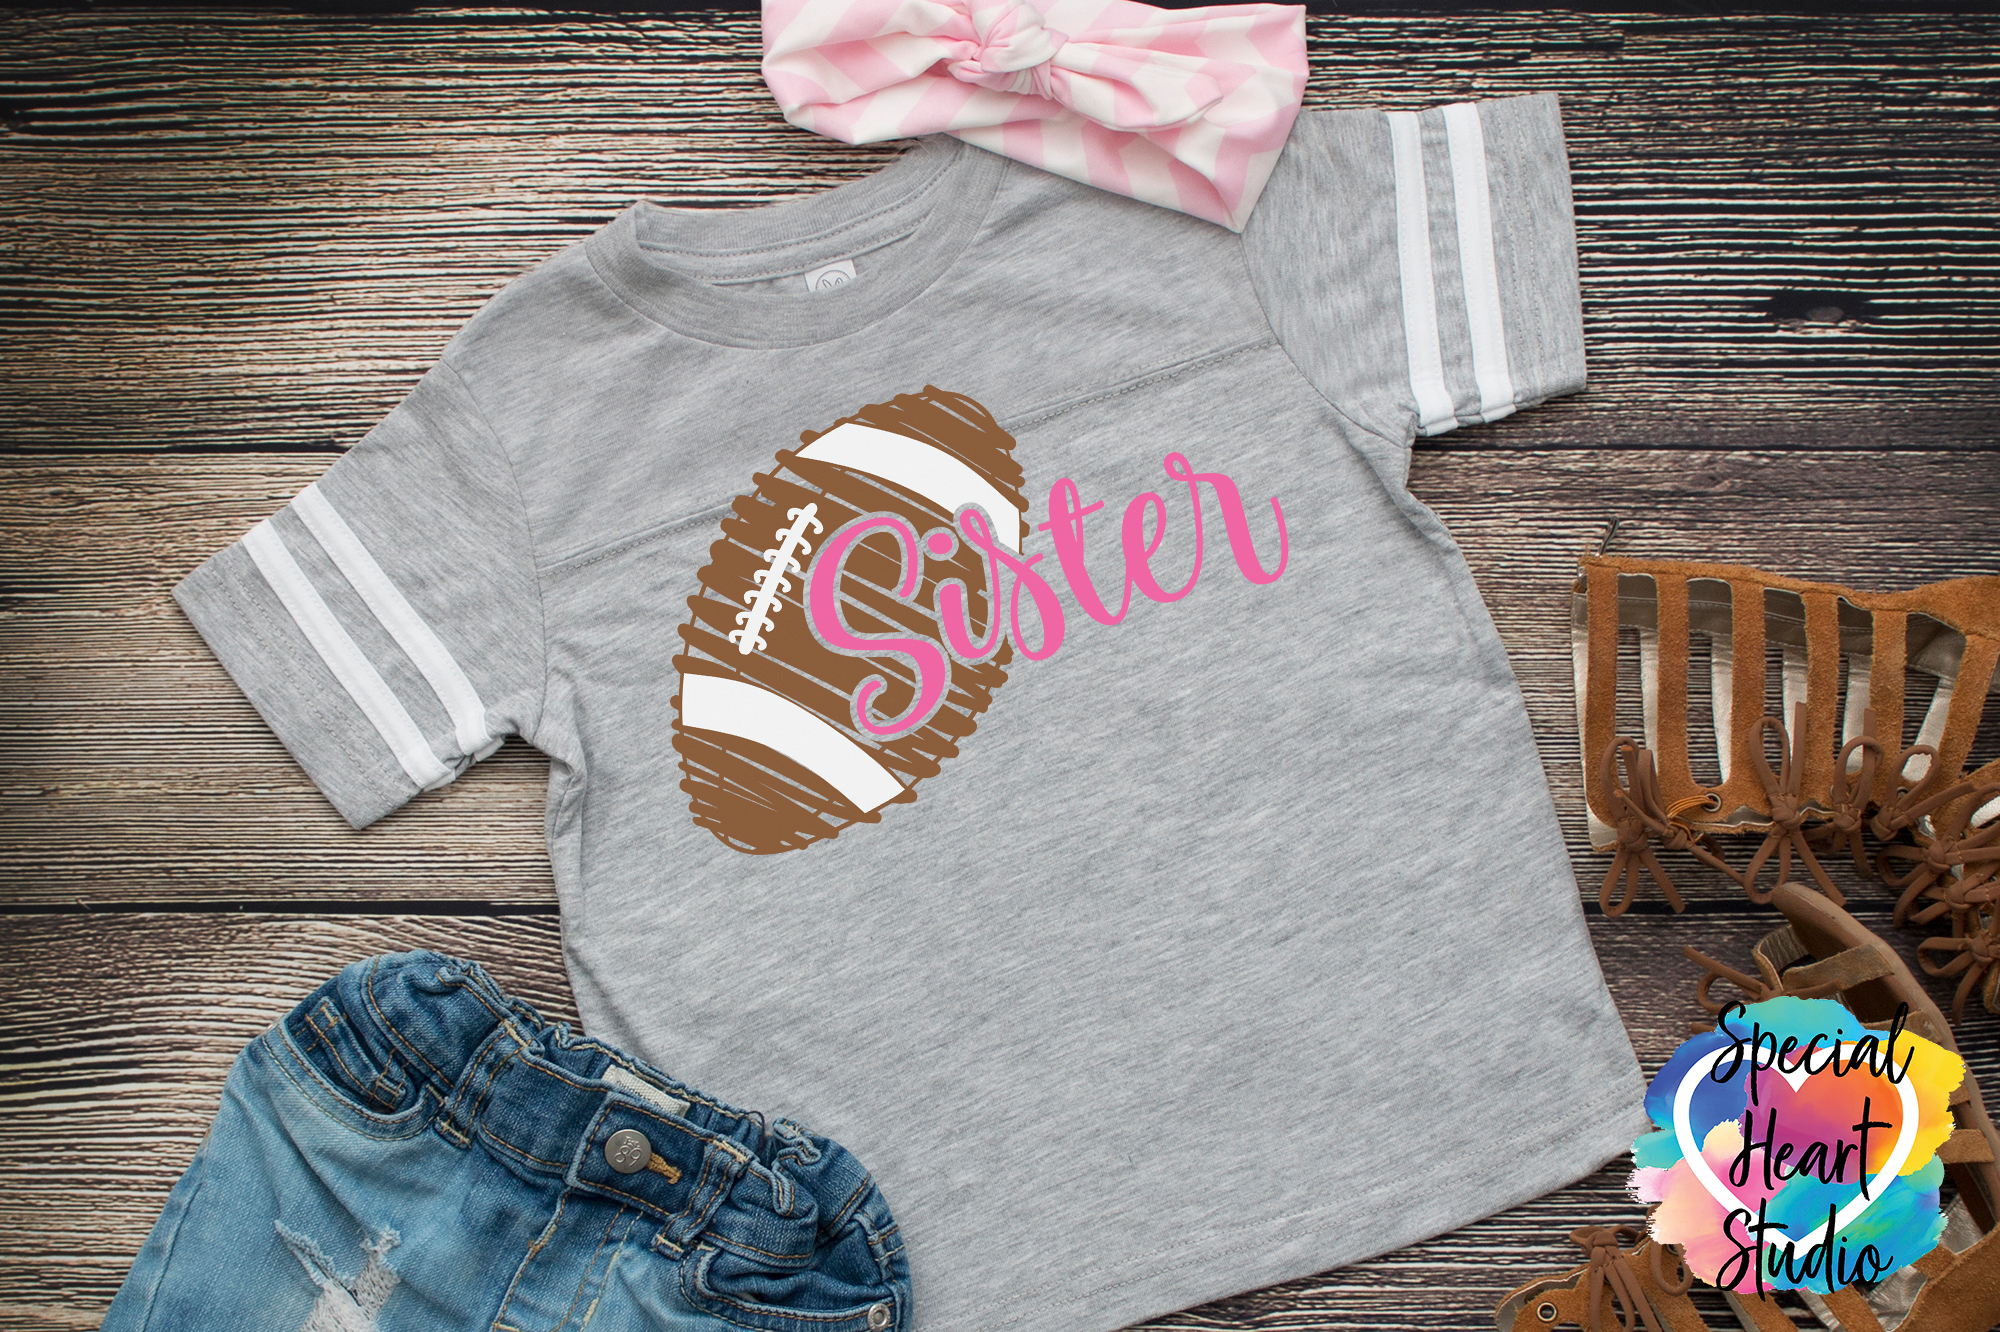 Football Sister - A Football SVG Cut File to cheer brother example image 1